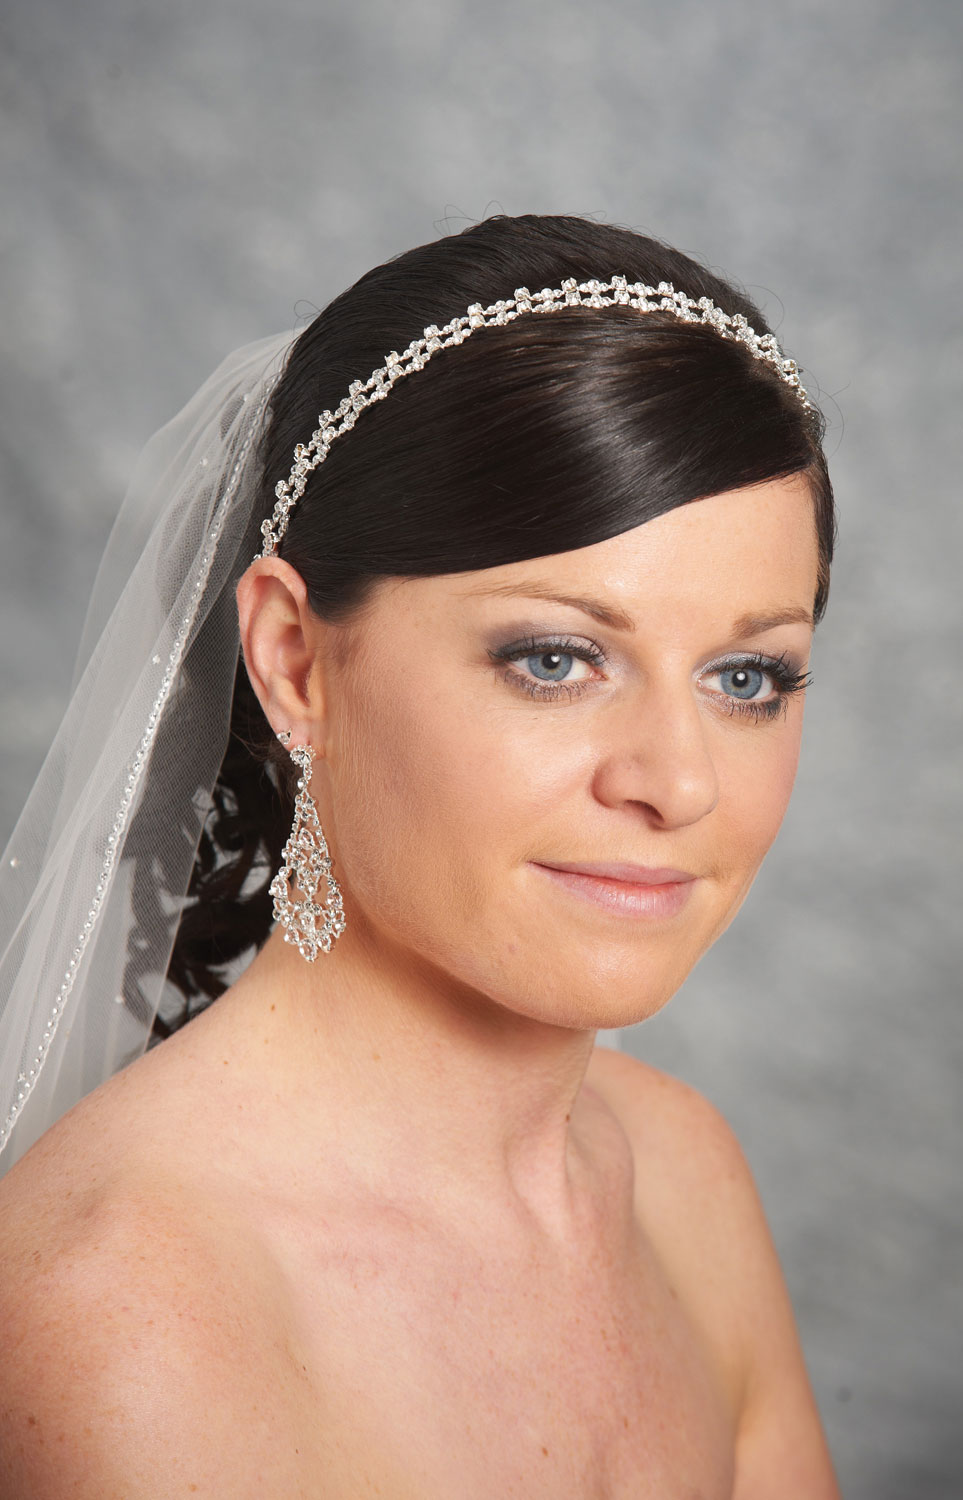 Bridal Classics Headbands & Wreaths HB-7010